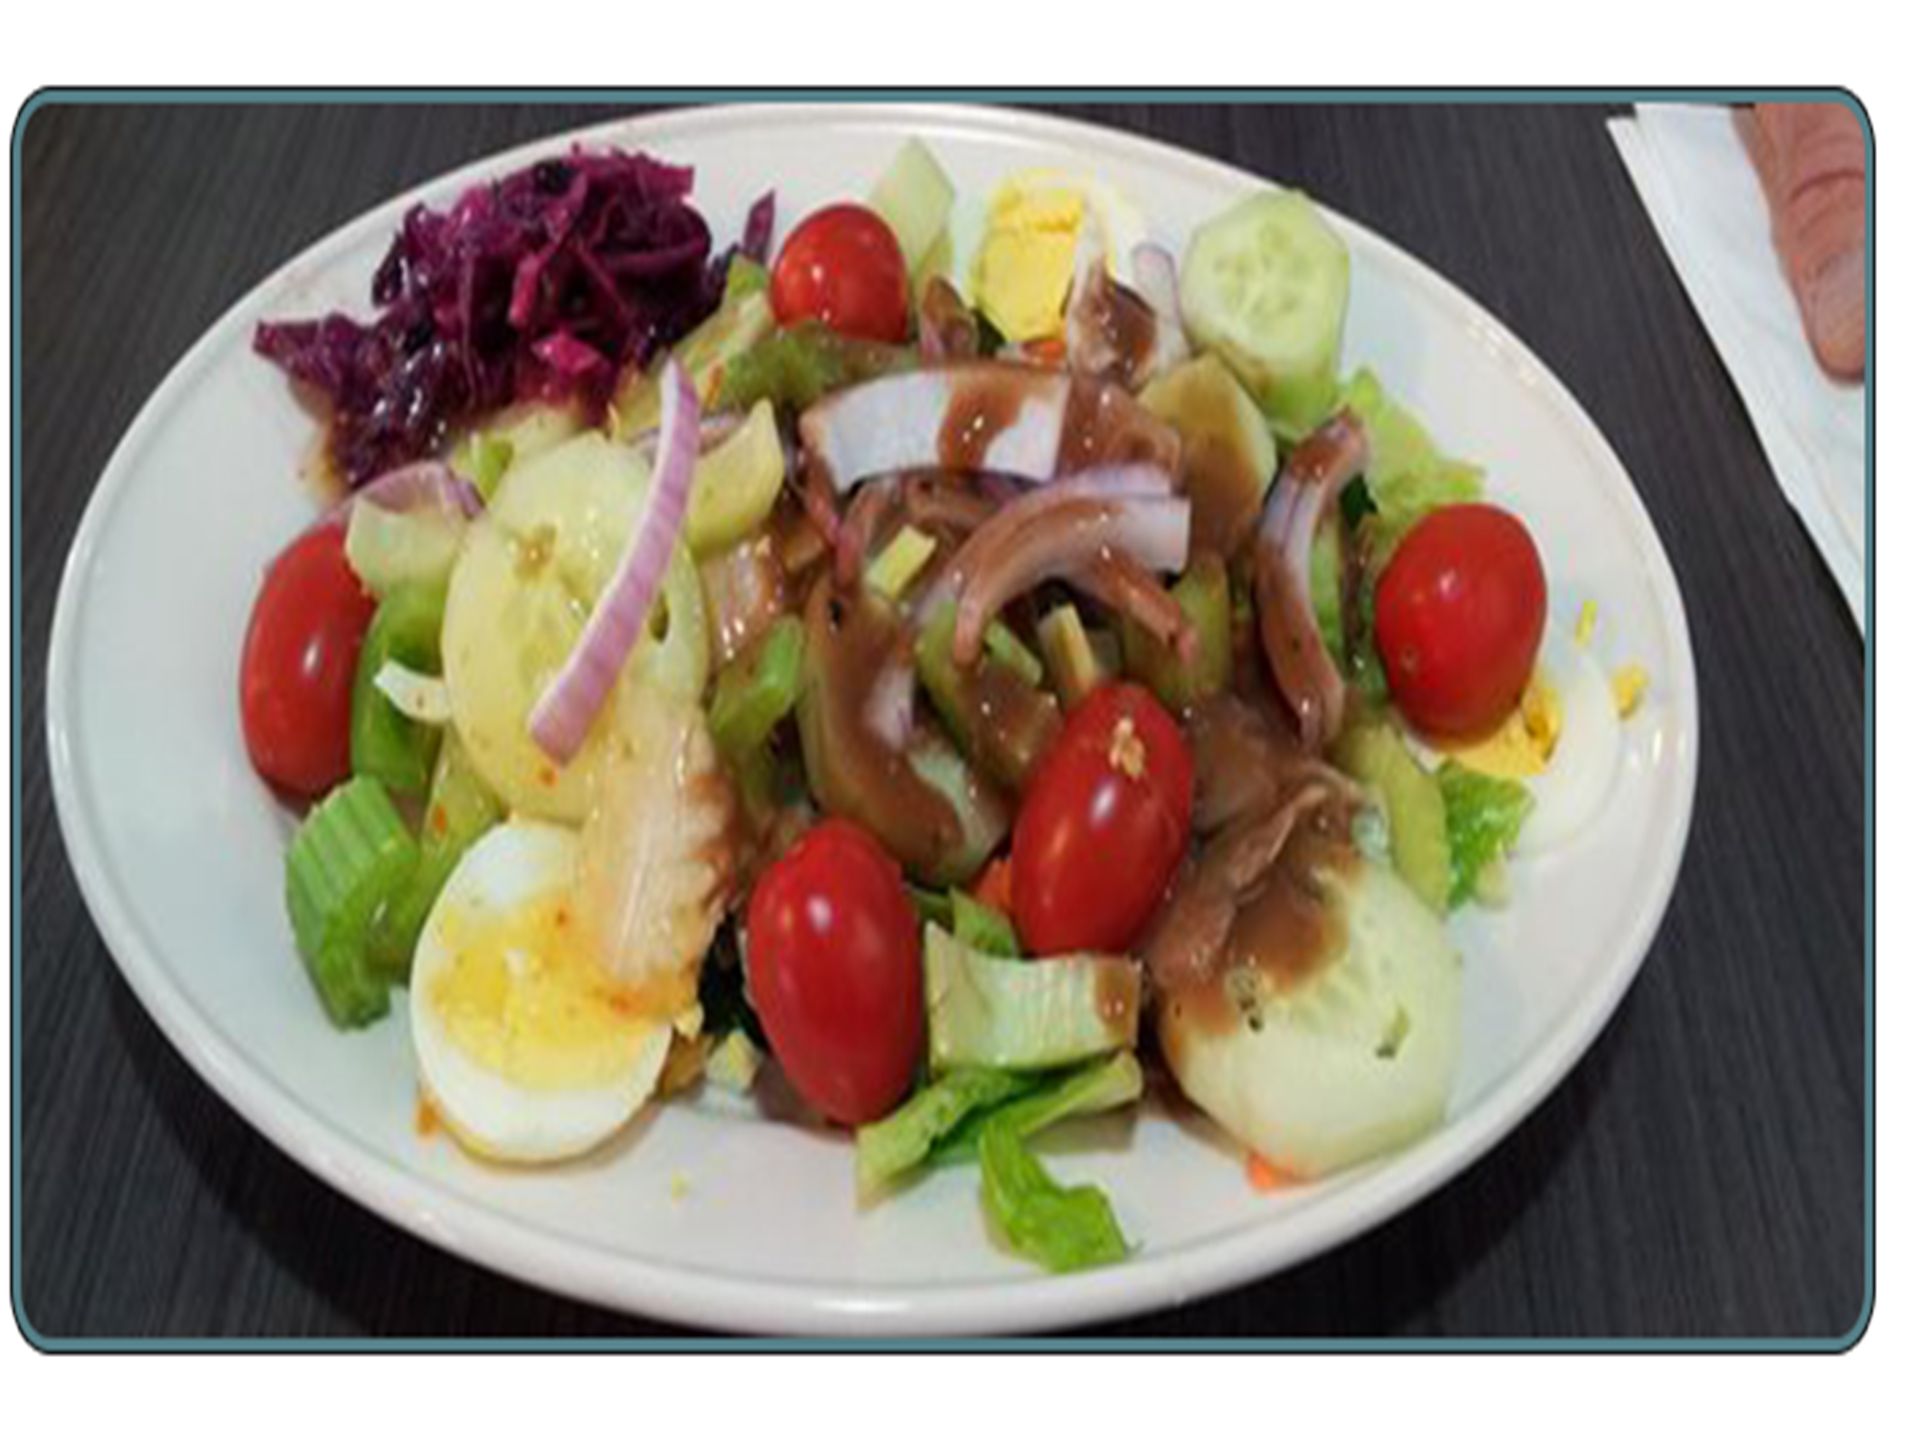 salad with tomatoes sliced onions and egg slices